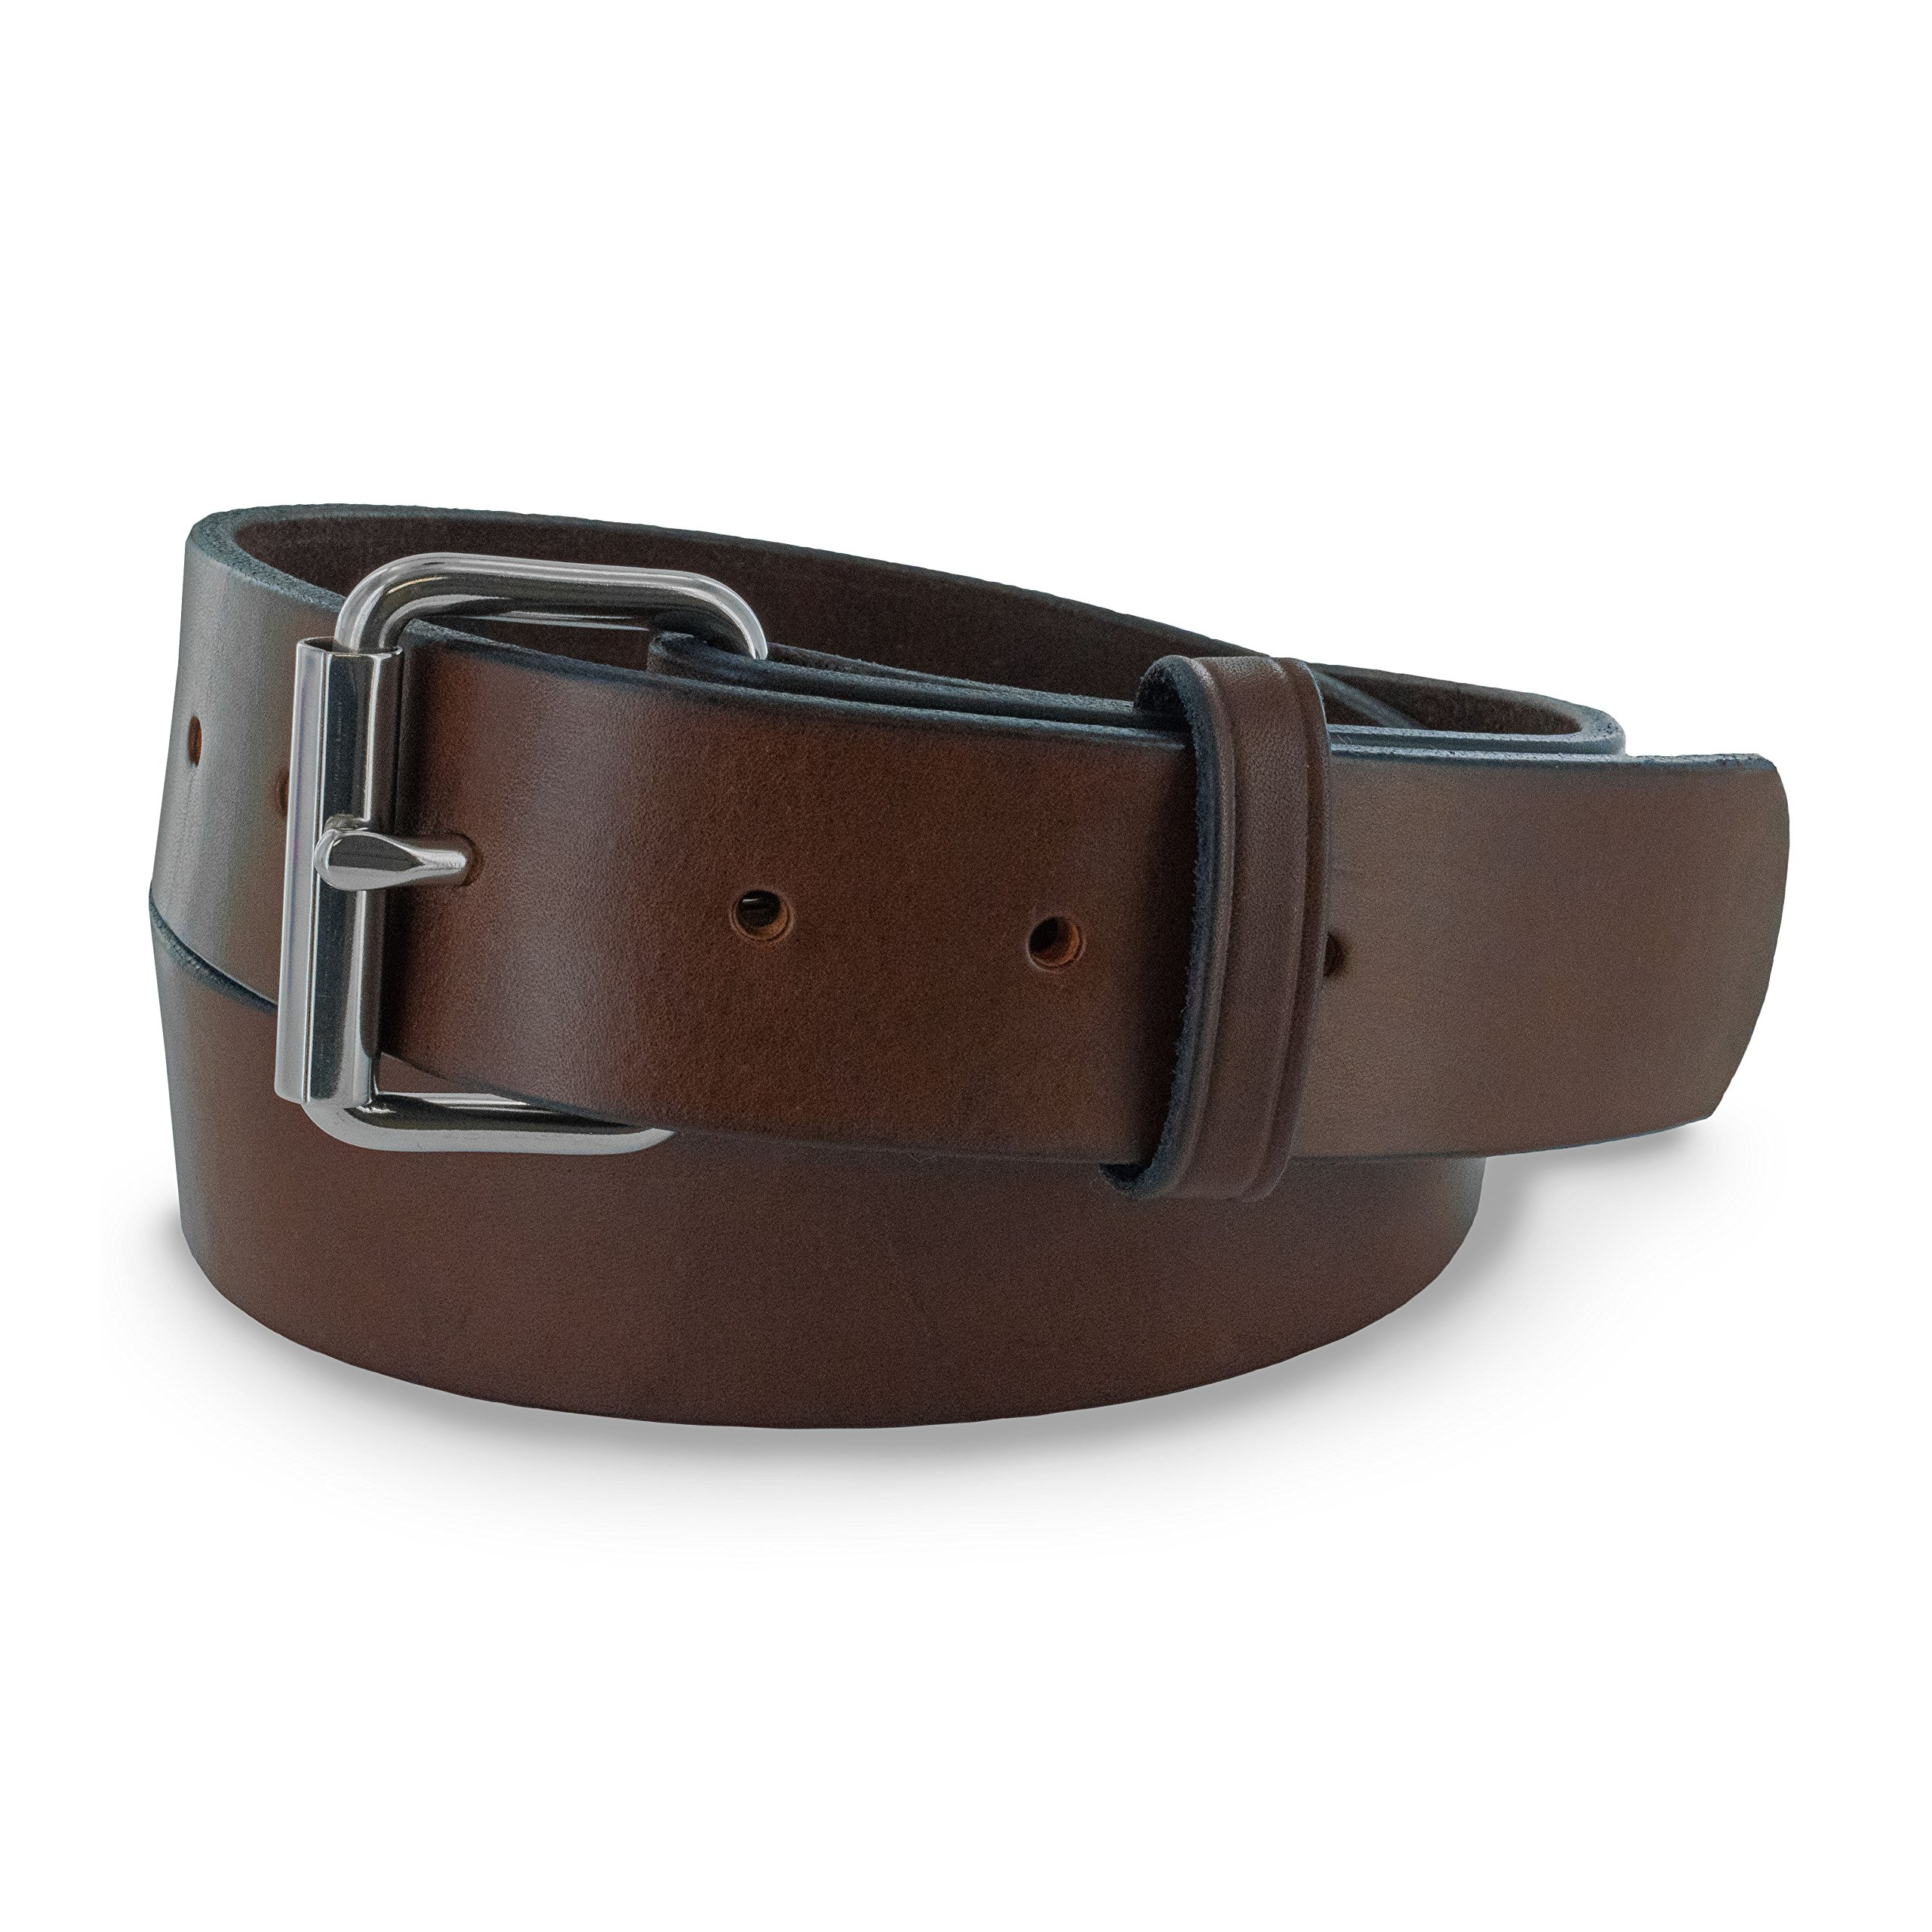 Hanks AMA2725 Enforcer Belt - 1.75'' - Brown - 50 by Hanks Belt